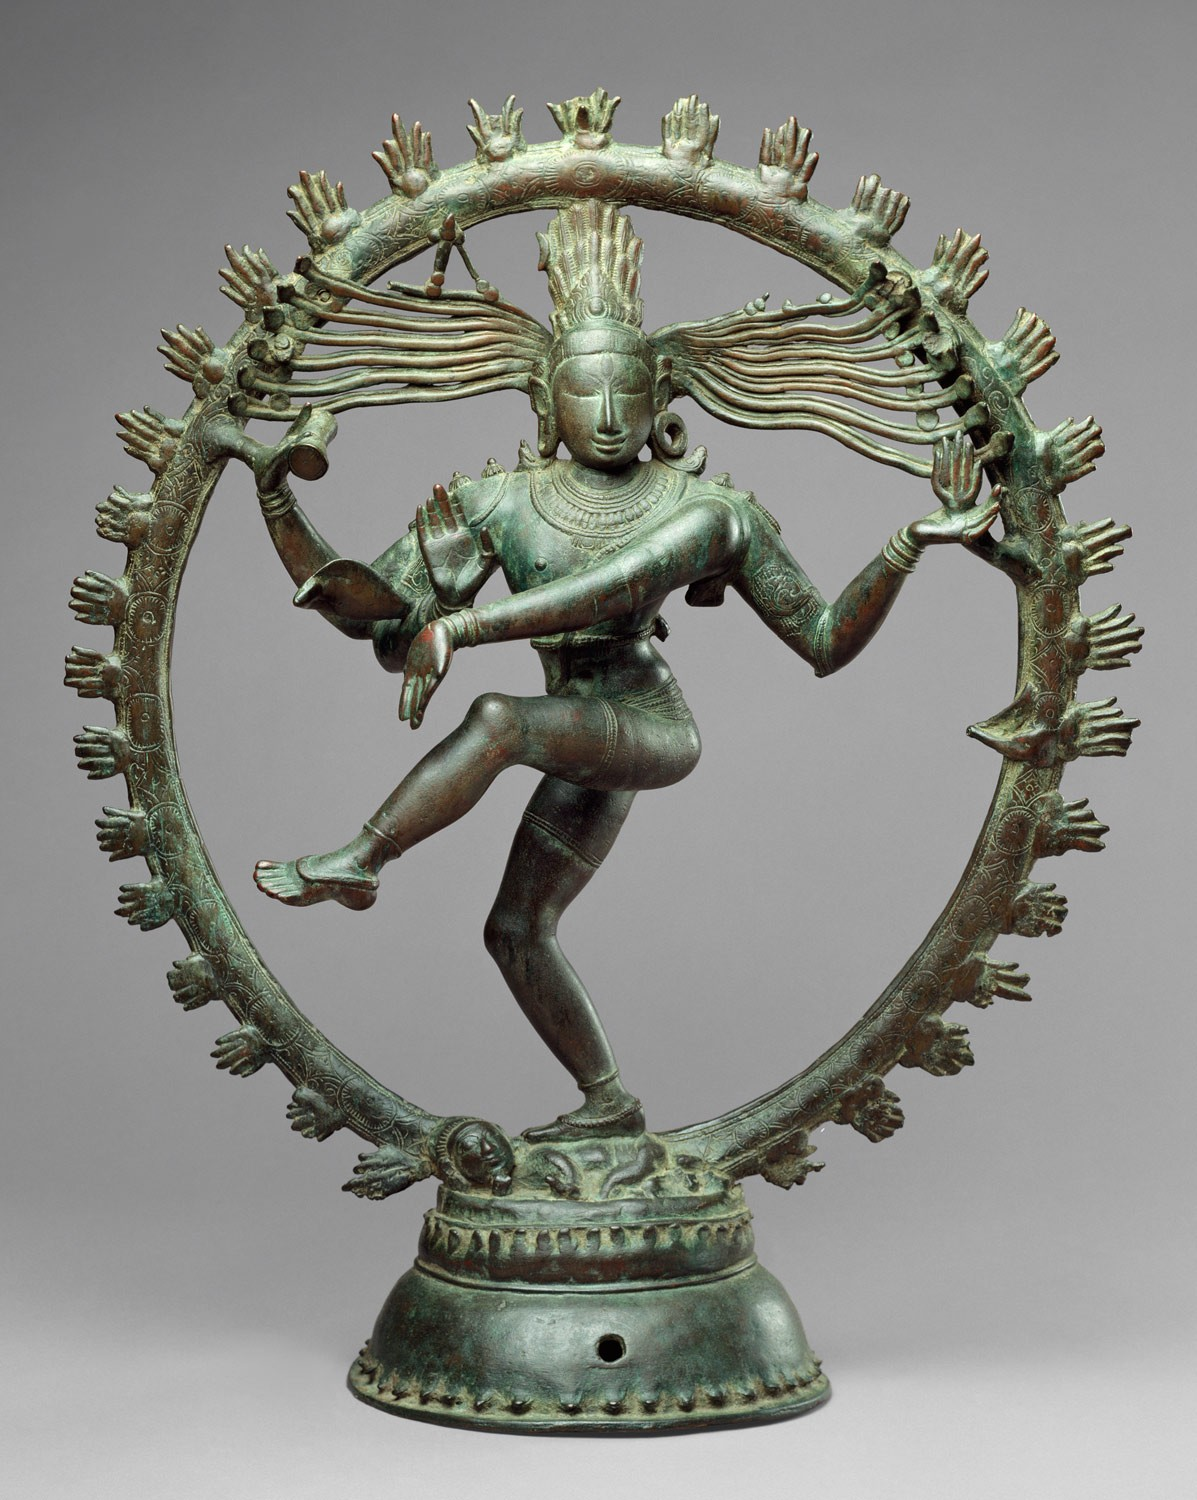 Caturmukhalinga Statue Returned to Nepal with Help of Art Institute of Chicago